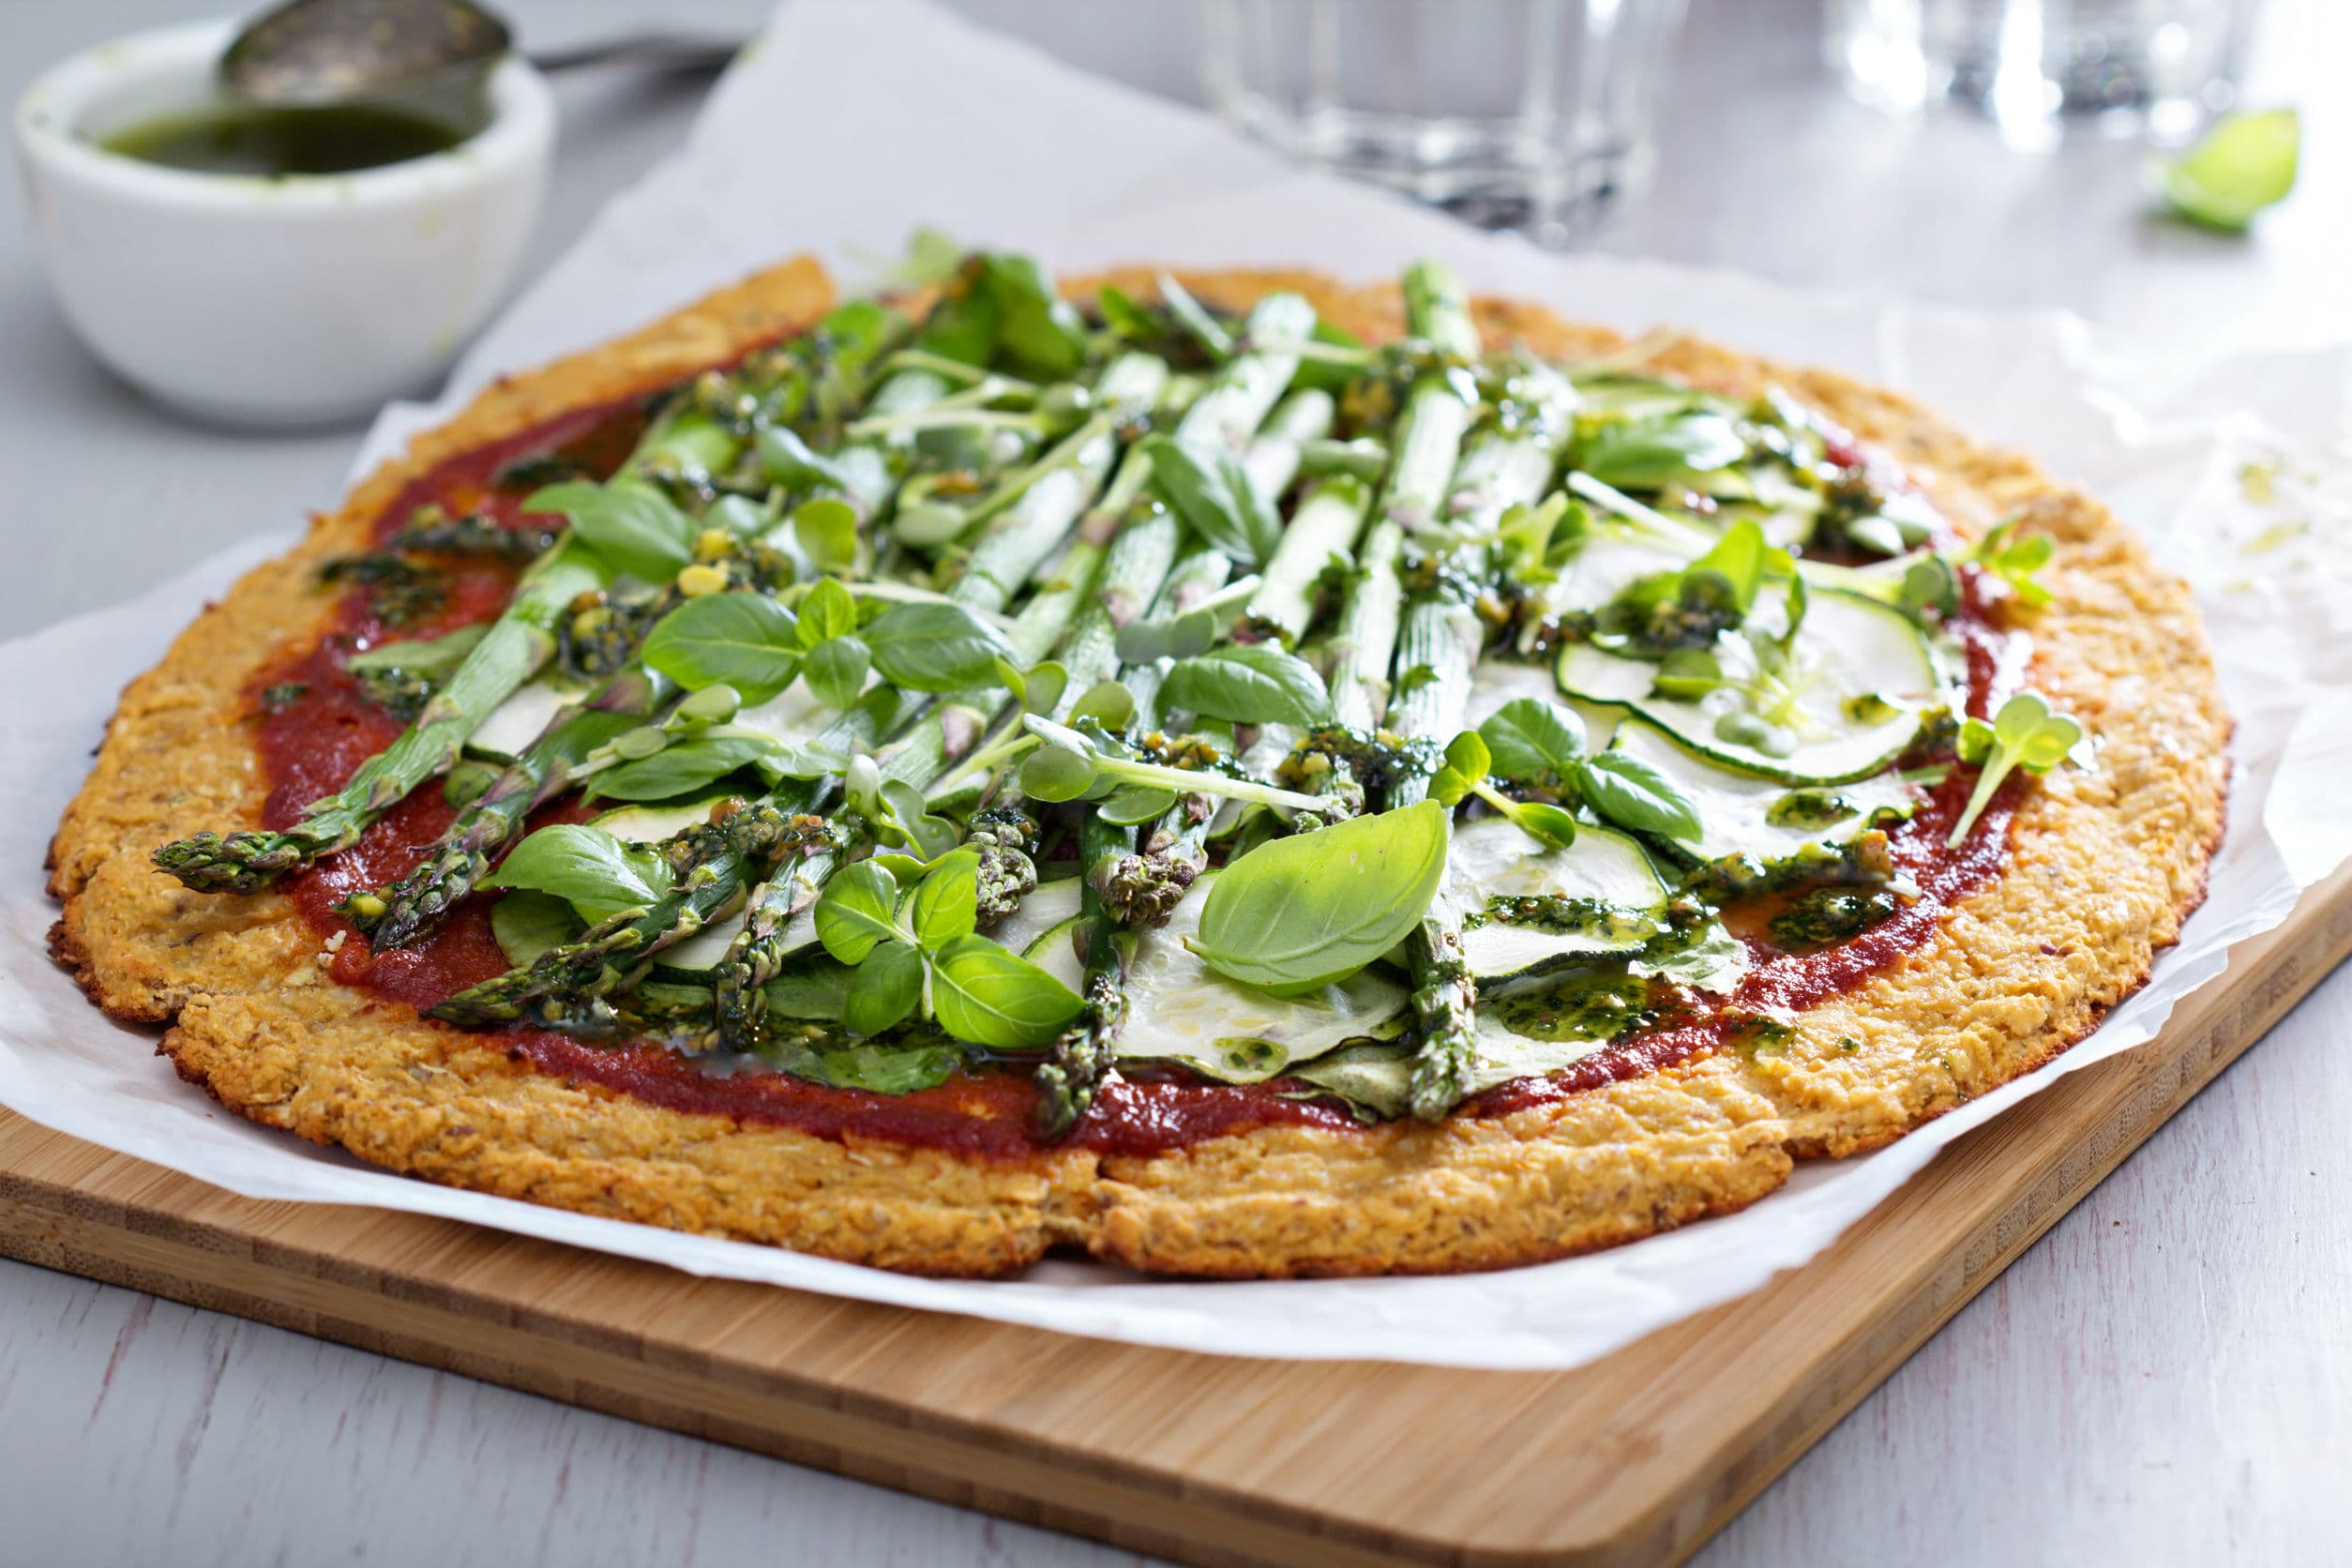 Pizzerias May Step Out Of The Norm With Unique Toppings And Crusts